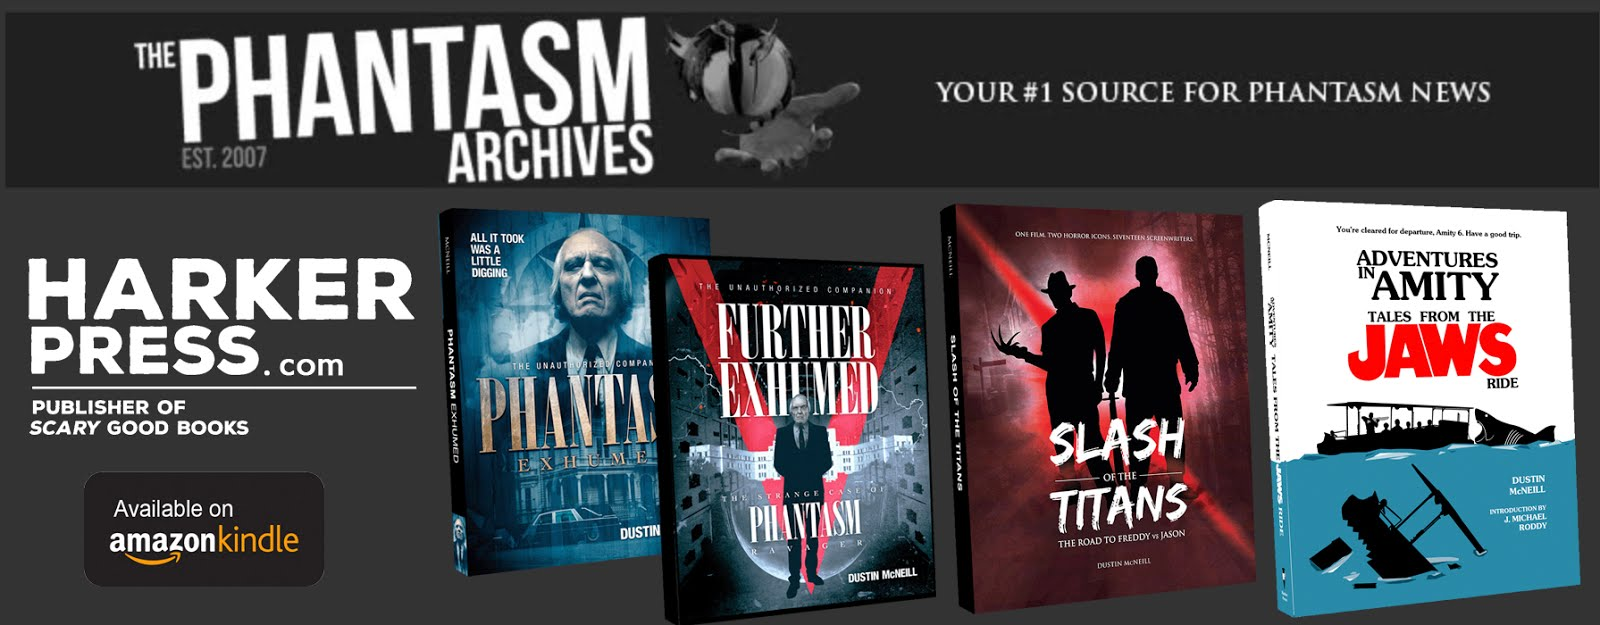 the PHANTASM ARCHIVES!